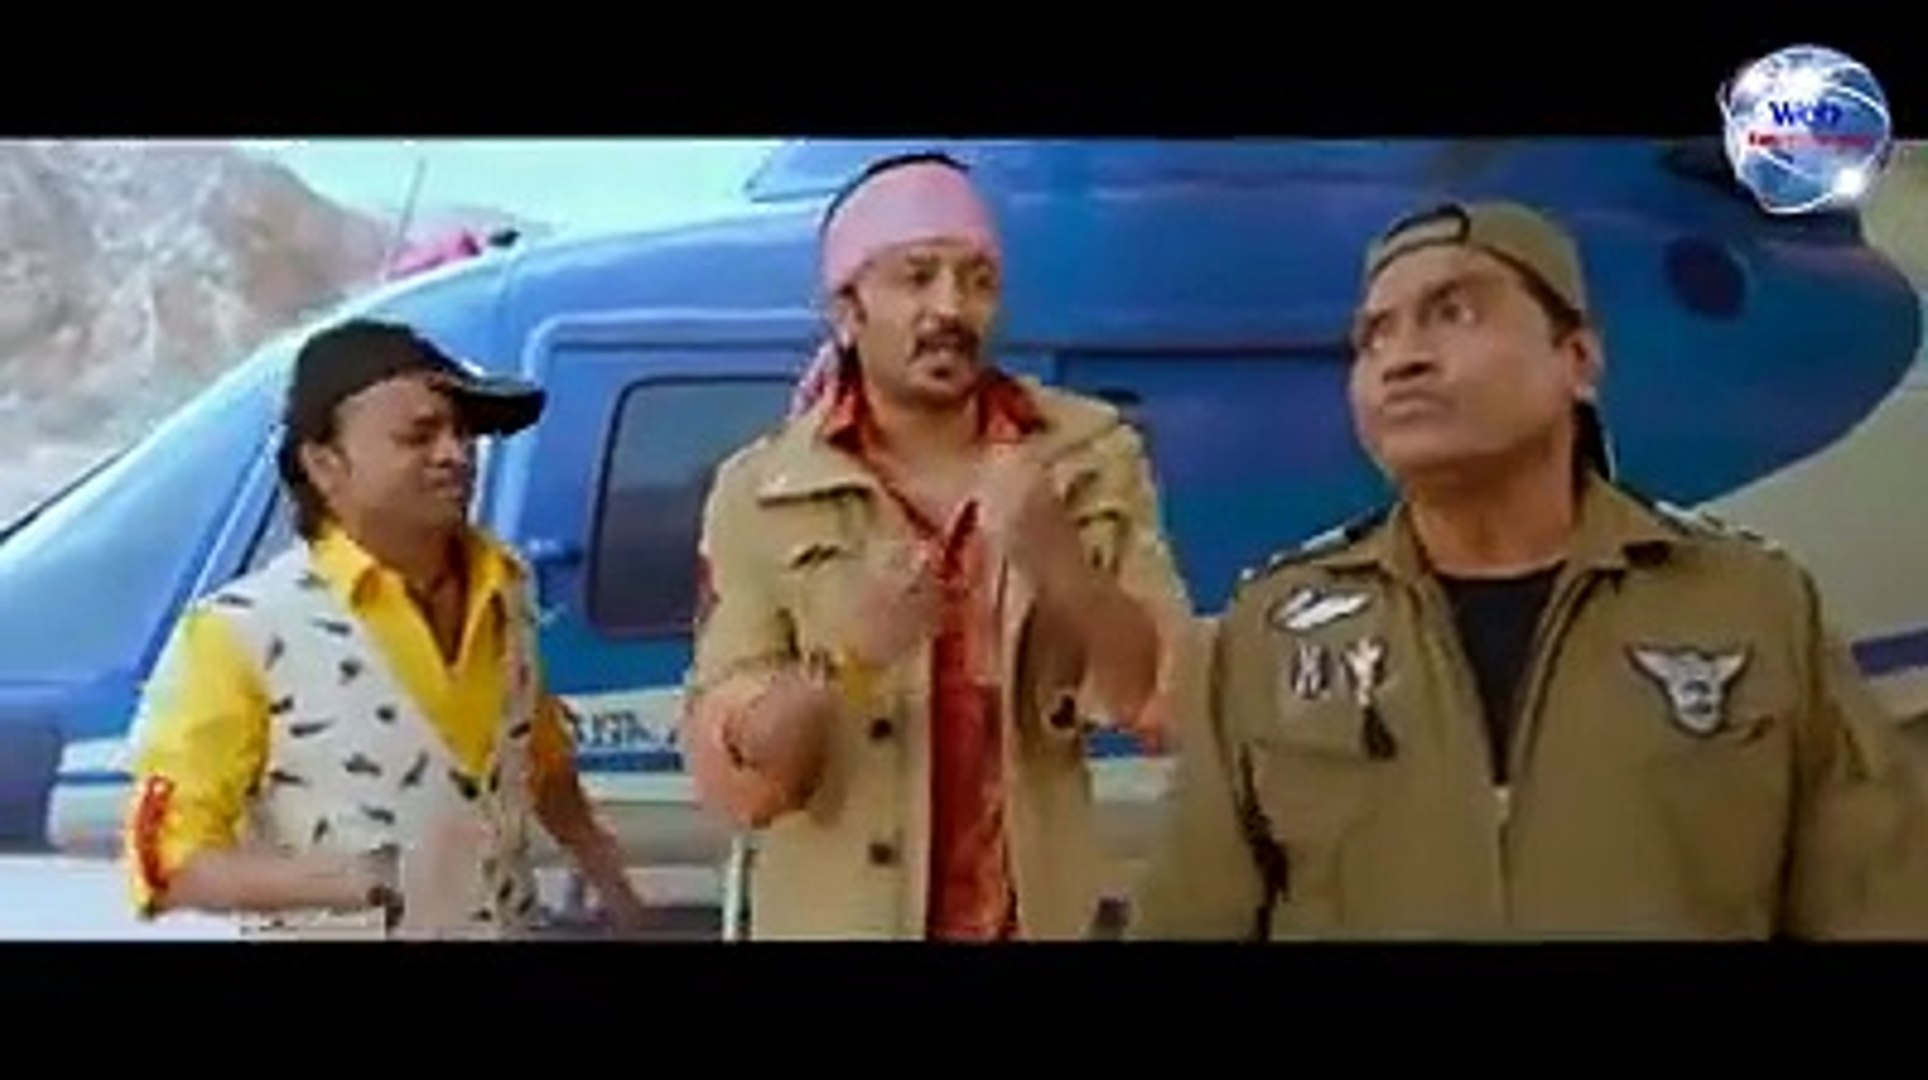 Dhamal movie comedy, ritesh deshmukh comedy, Johny liver comedy arshad warsi comedy